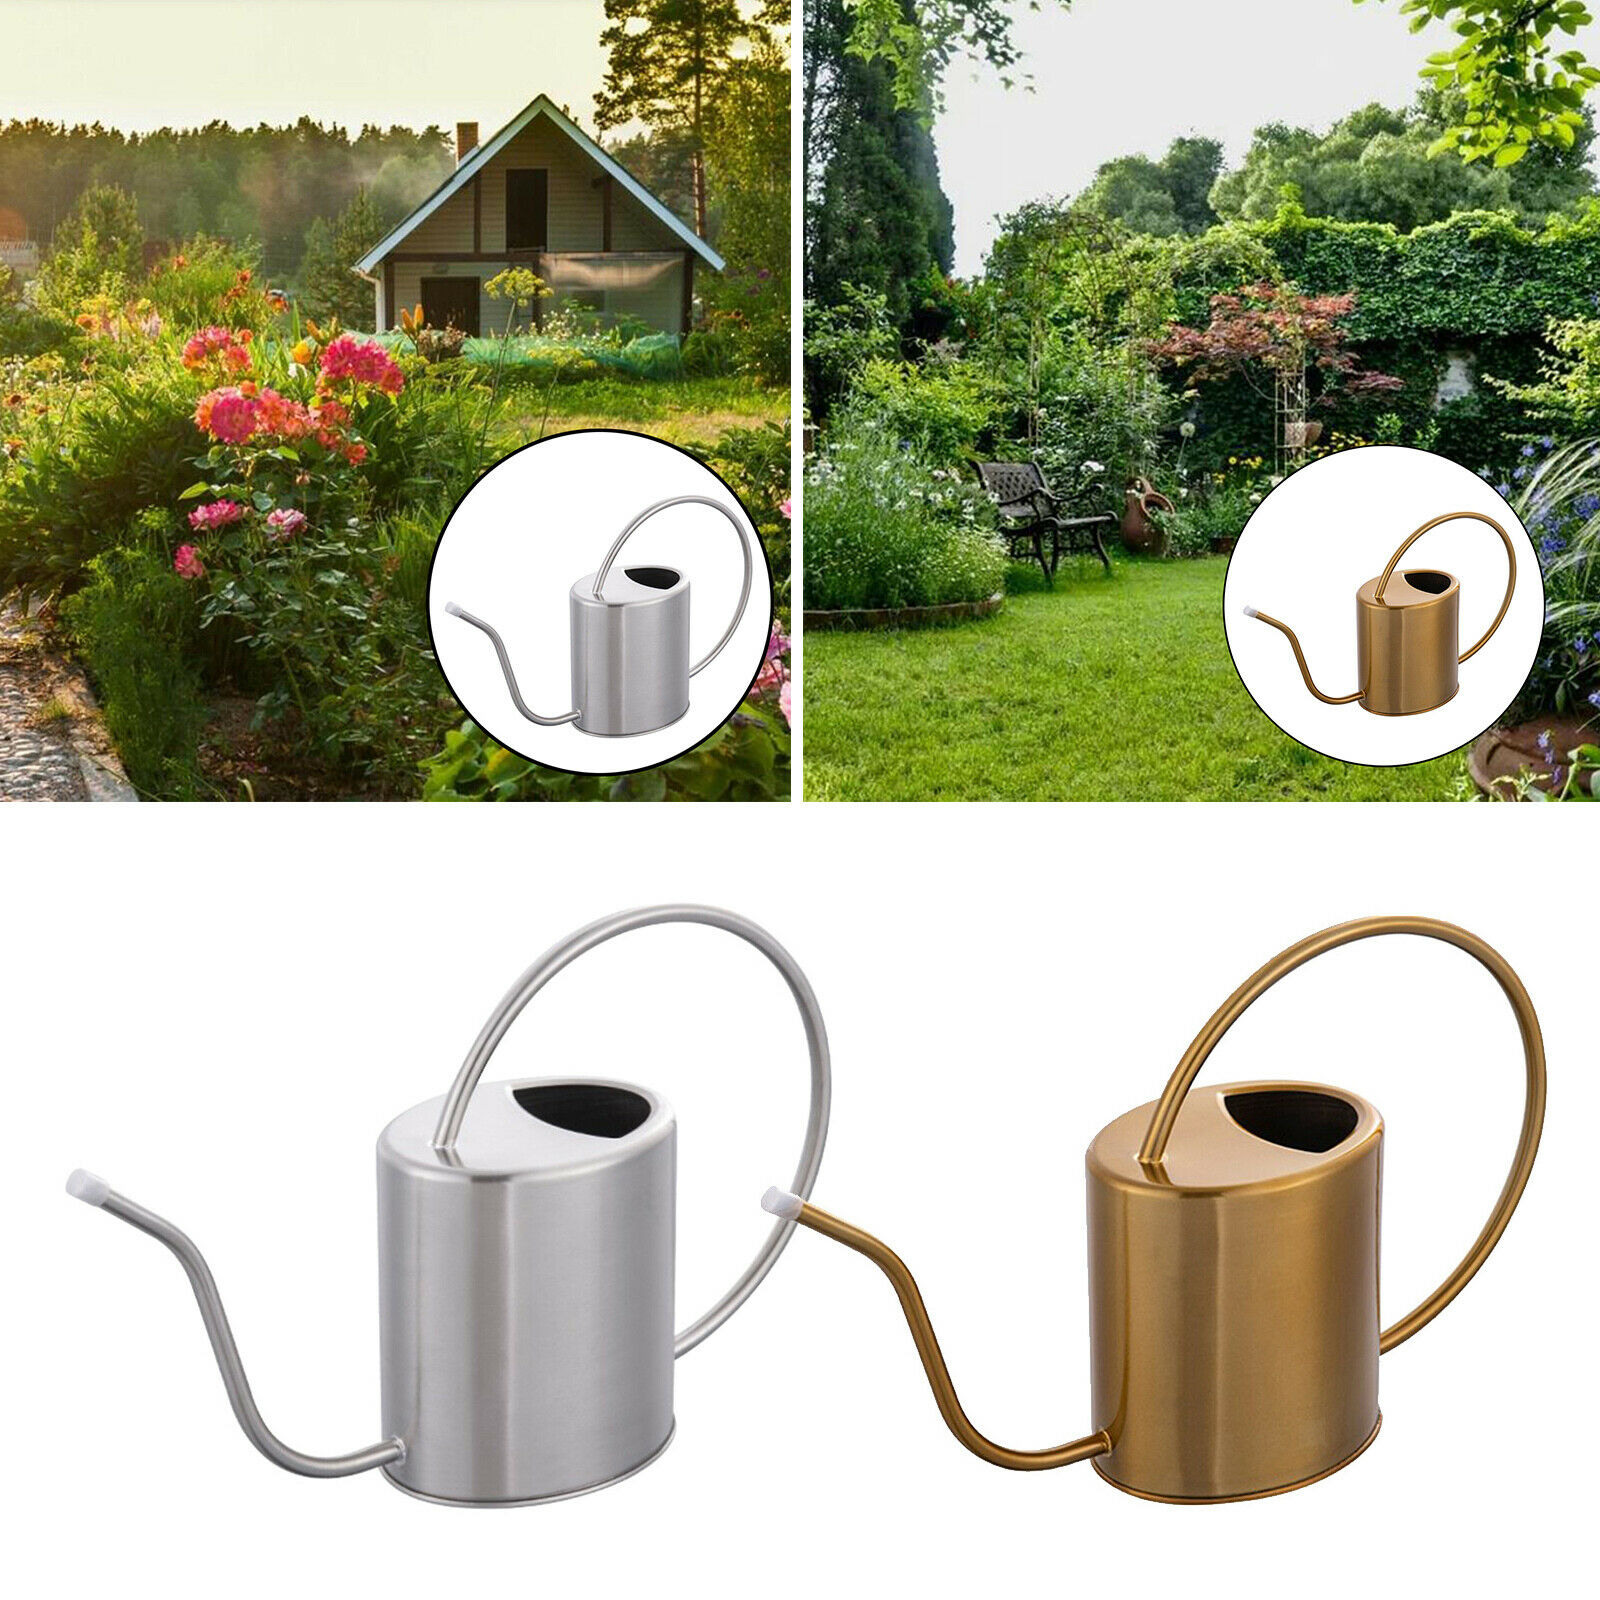 1.5L Gardening Watering Can for House Bonsai Plant Gardening Flower Long Spout